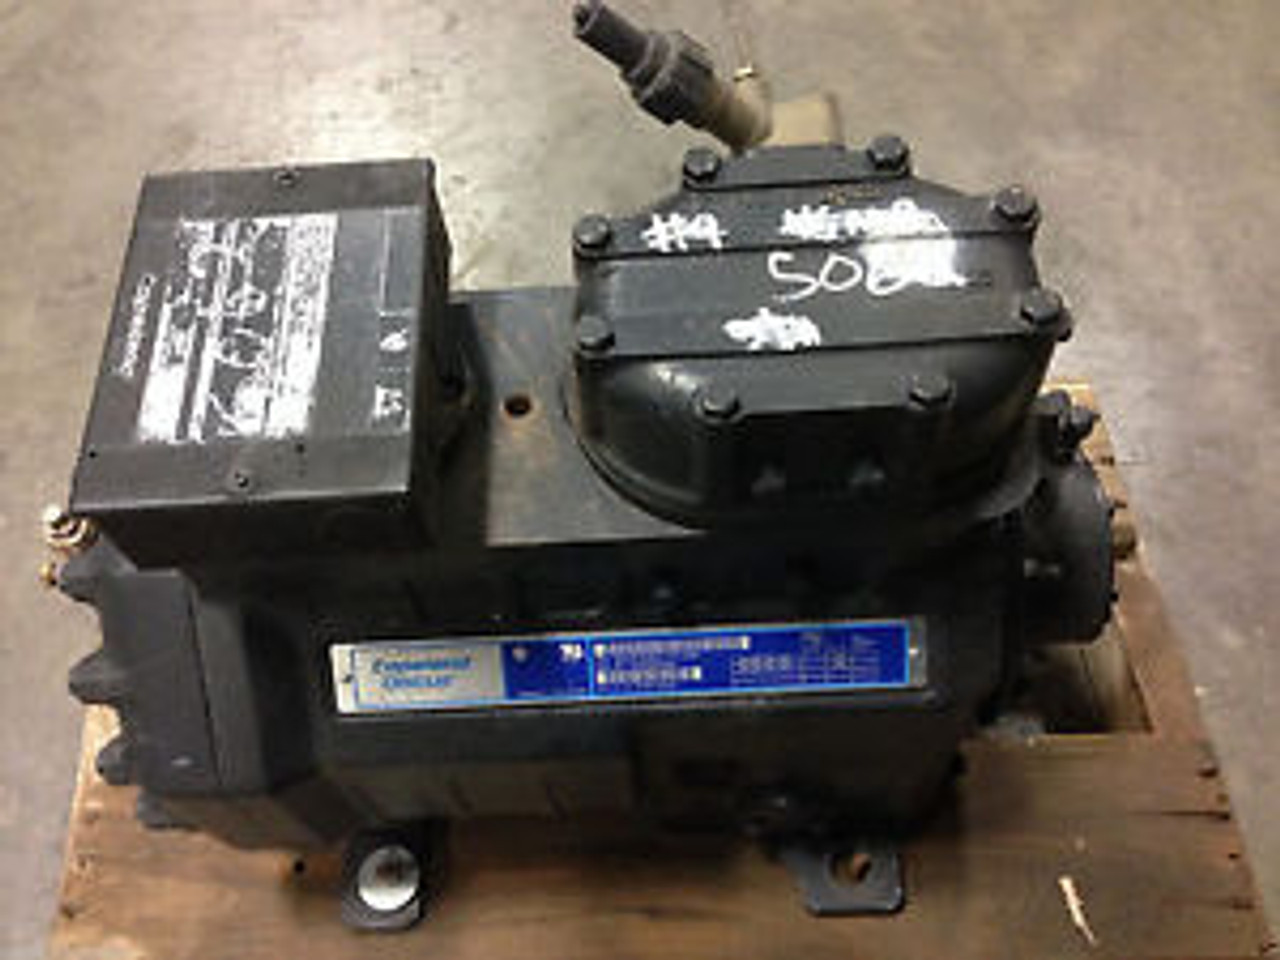 New Overstock 3 5hp Low Temp Copeland Discus Compressor 2DL3F20K0-TFC-200  R22